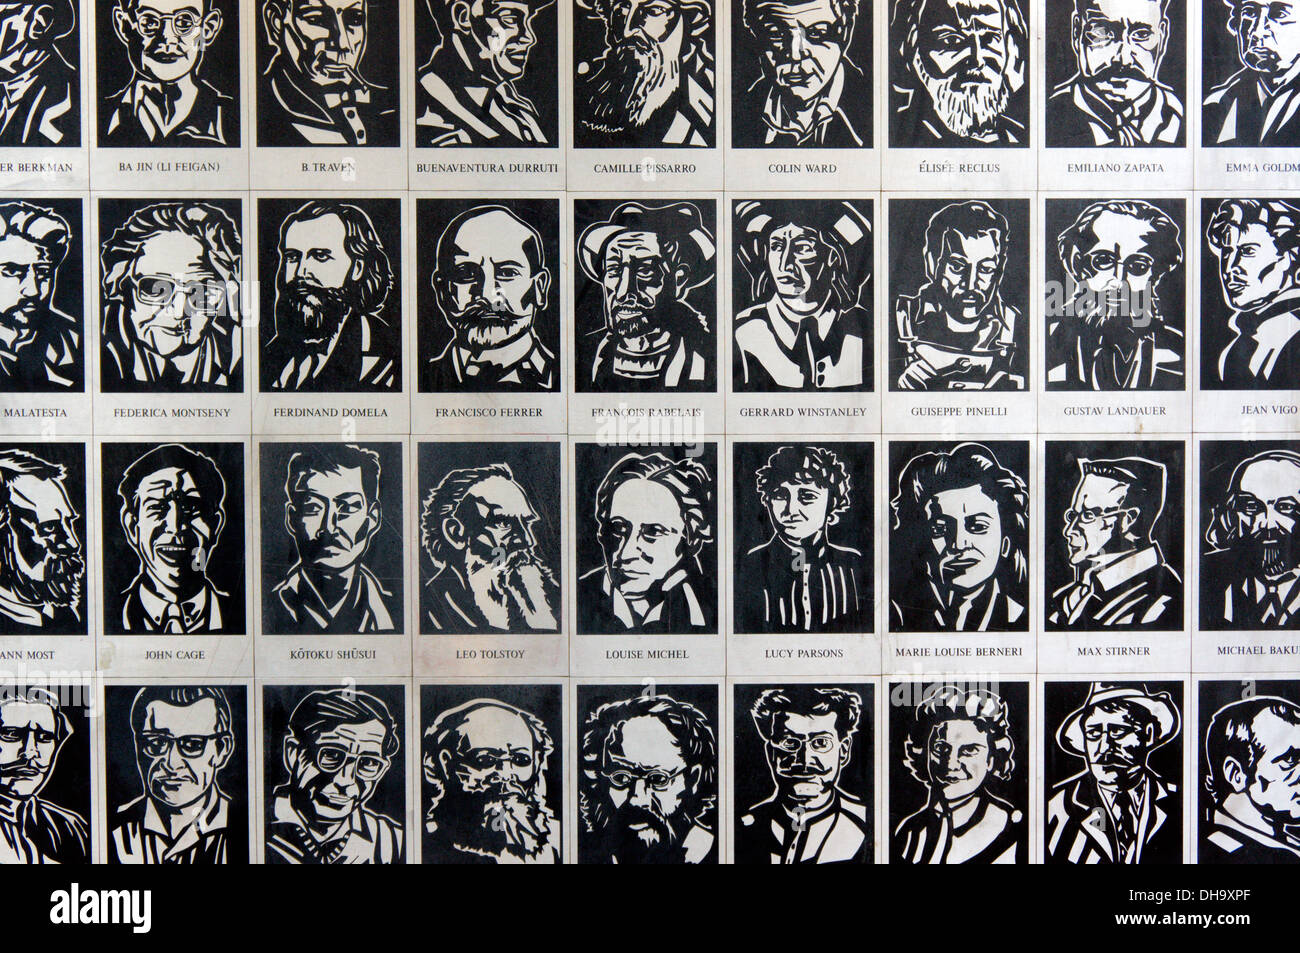 Tiles showing radical writers and artists on the wall of Freedom Press anarchist publishers and bookshop in Whitechapel. - Stock Image